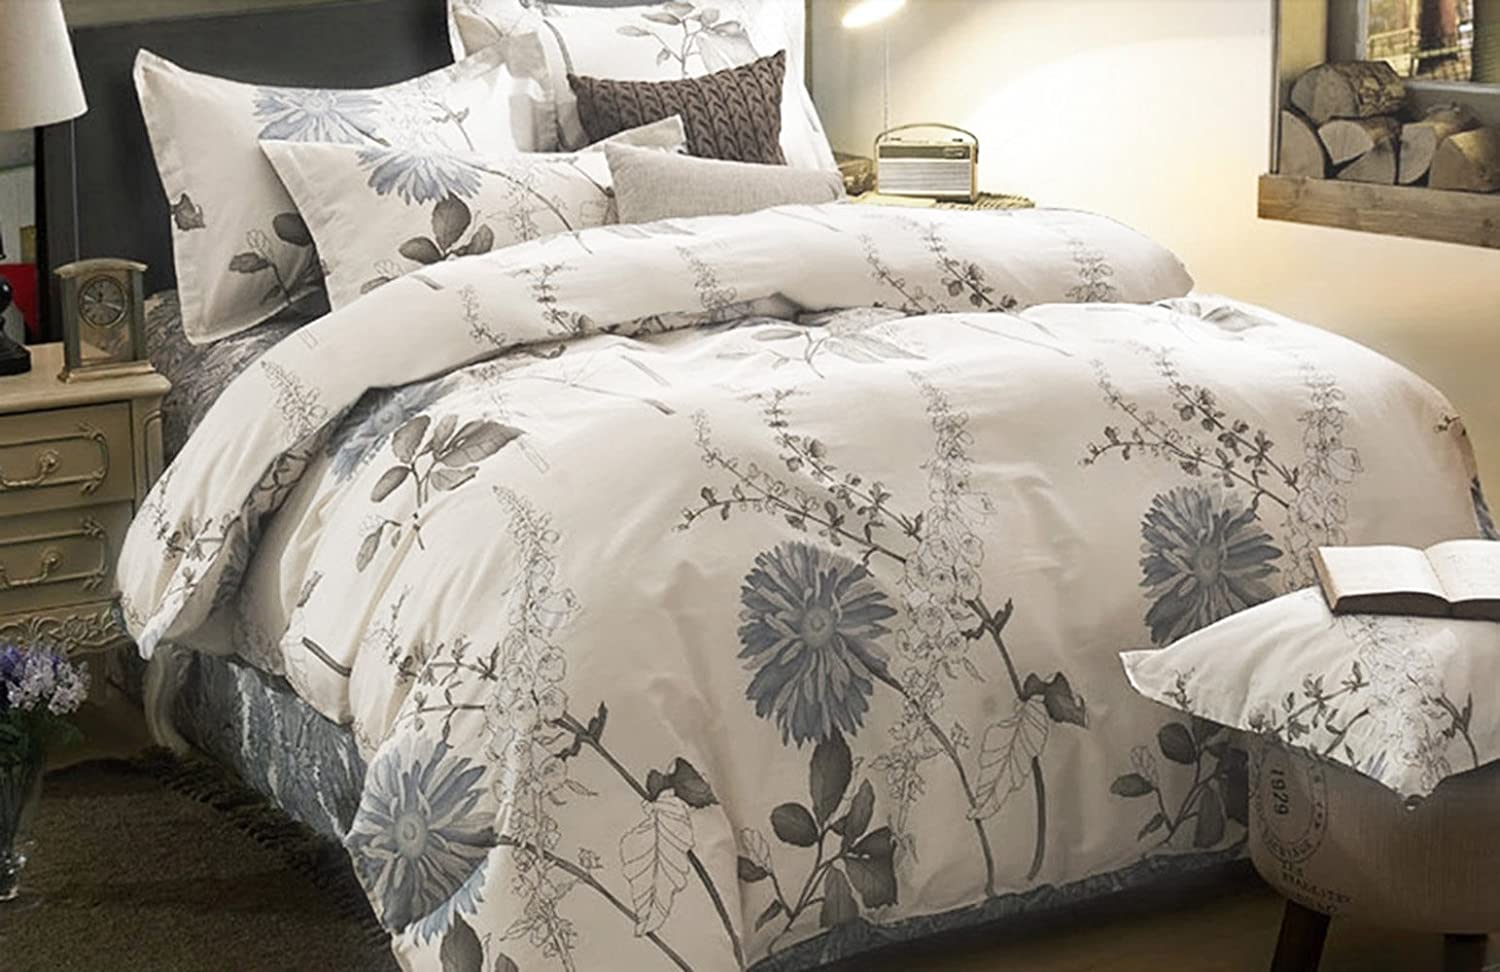 Find great deals on eBay for duvet set king size. Shop with confidence.